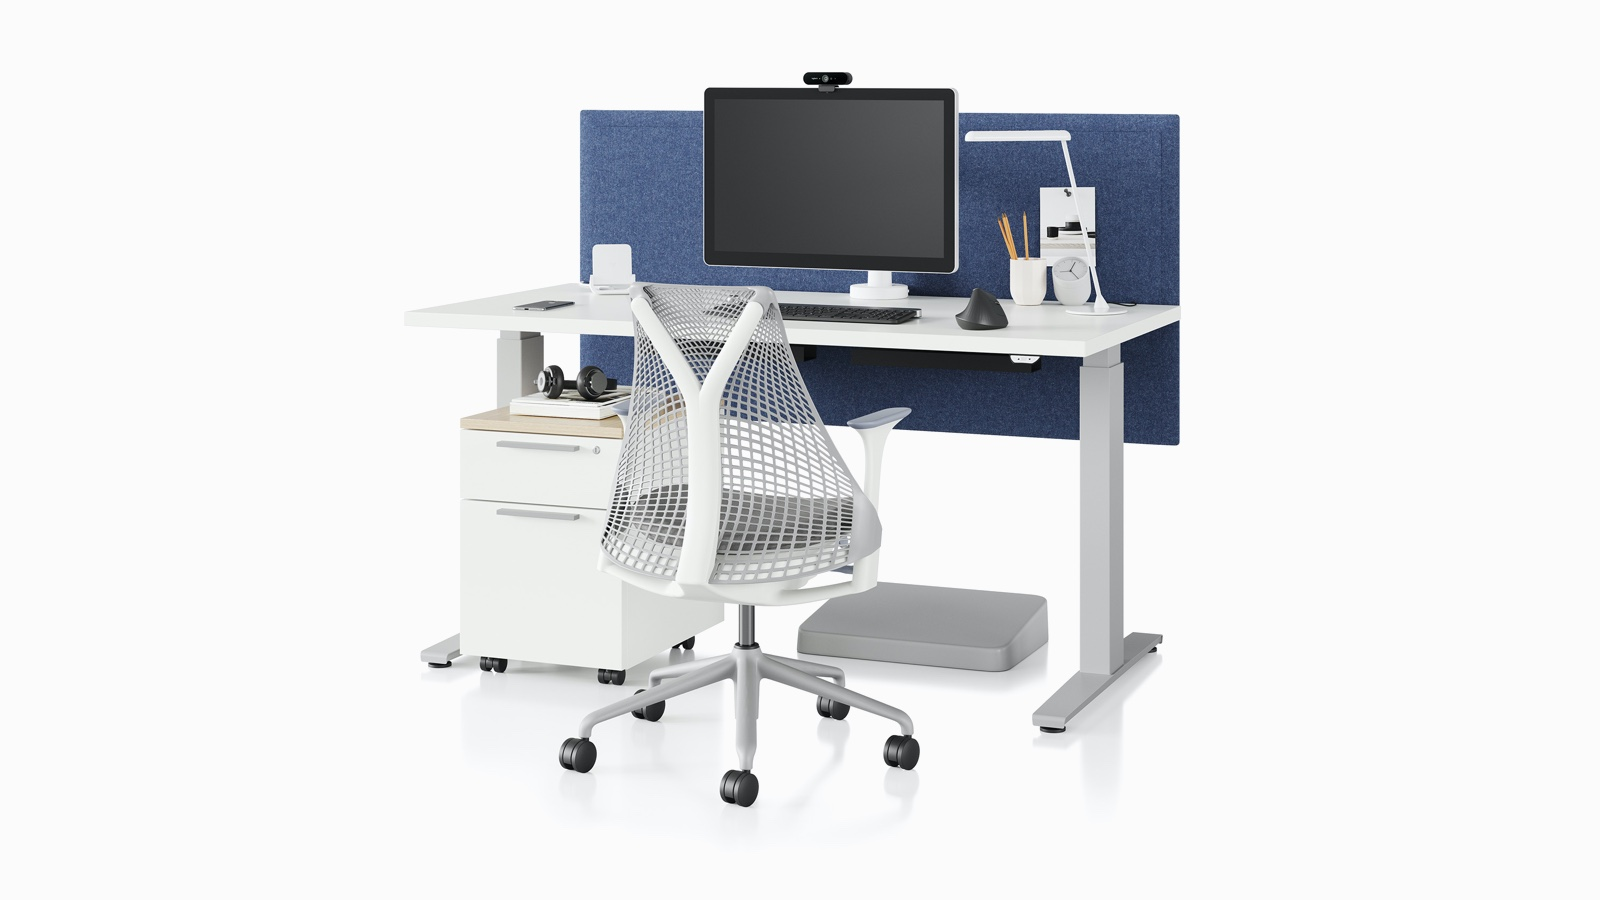 A Sayl office chair in white and a sit-to-stand desk with a blue screen.